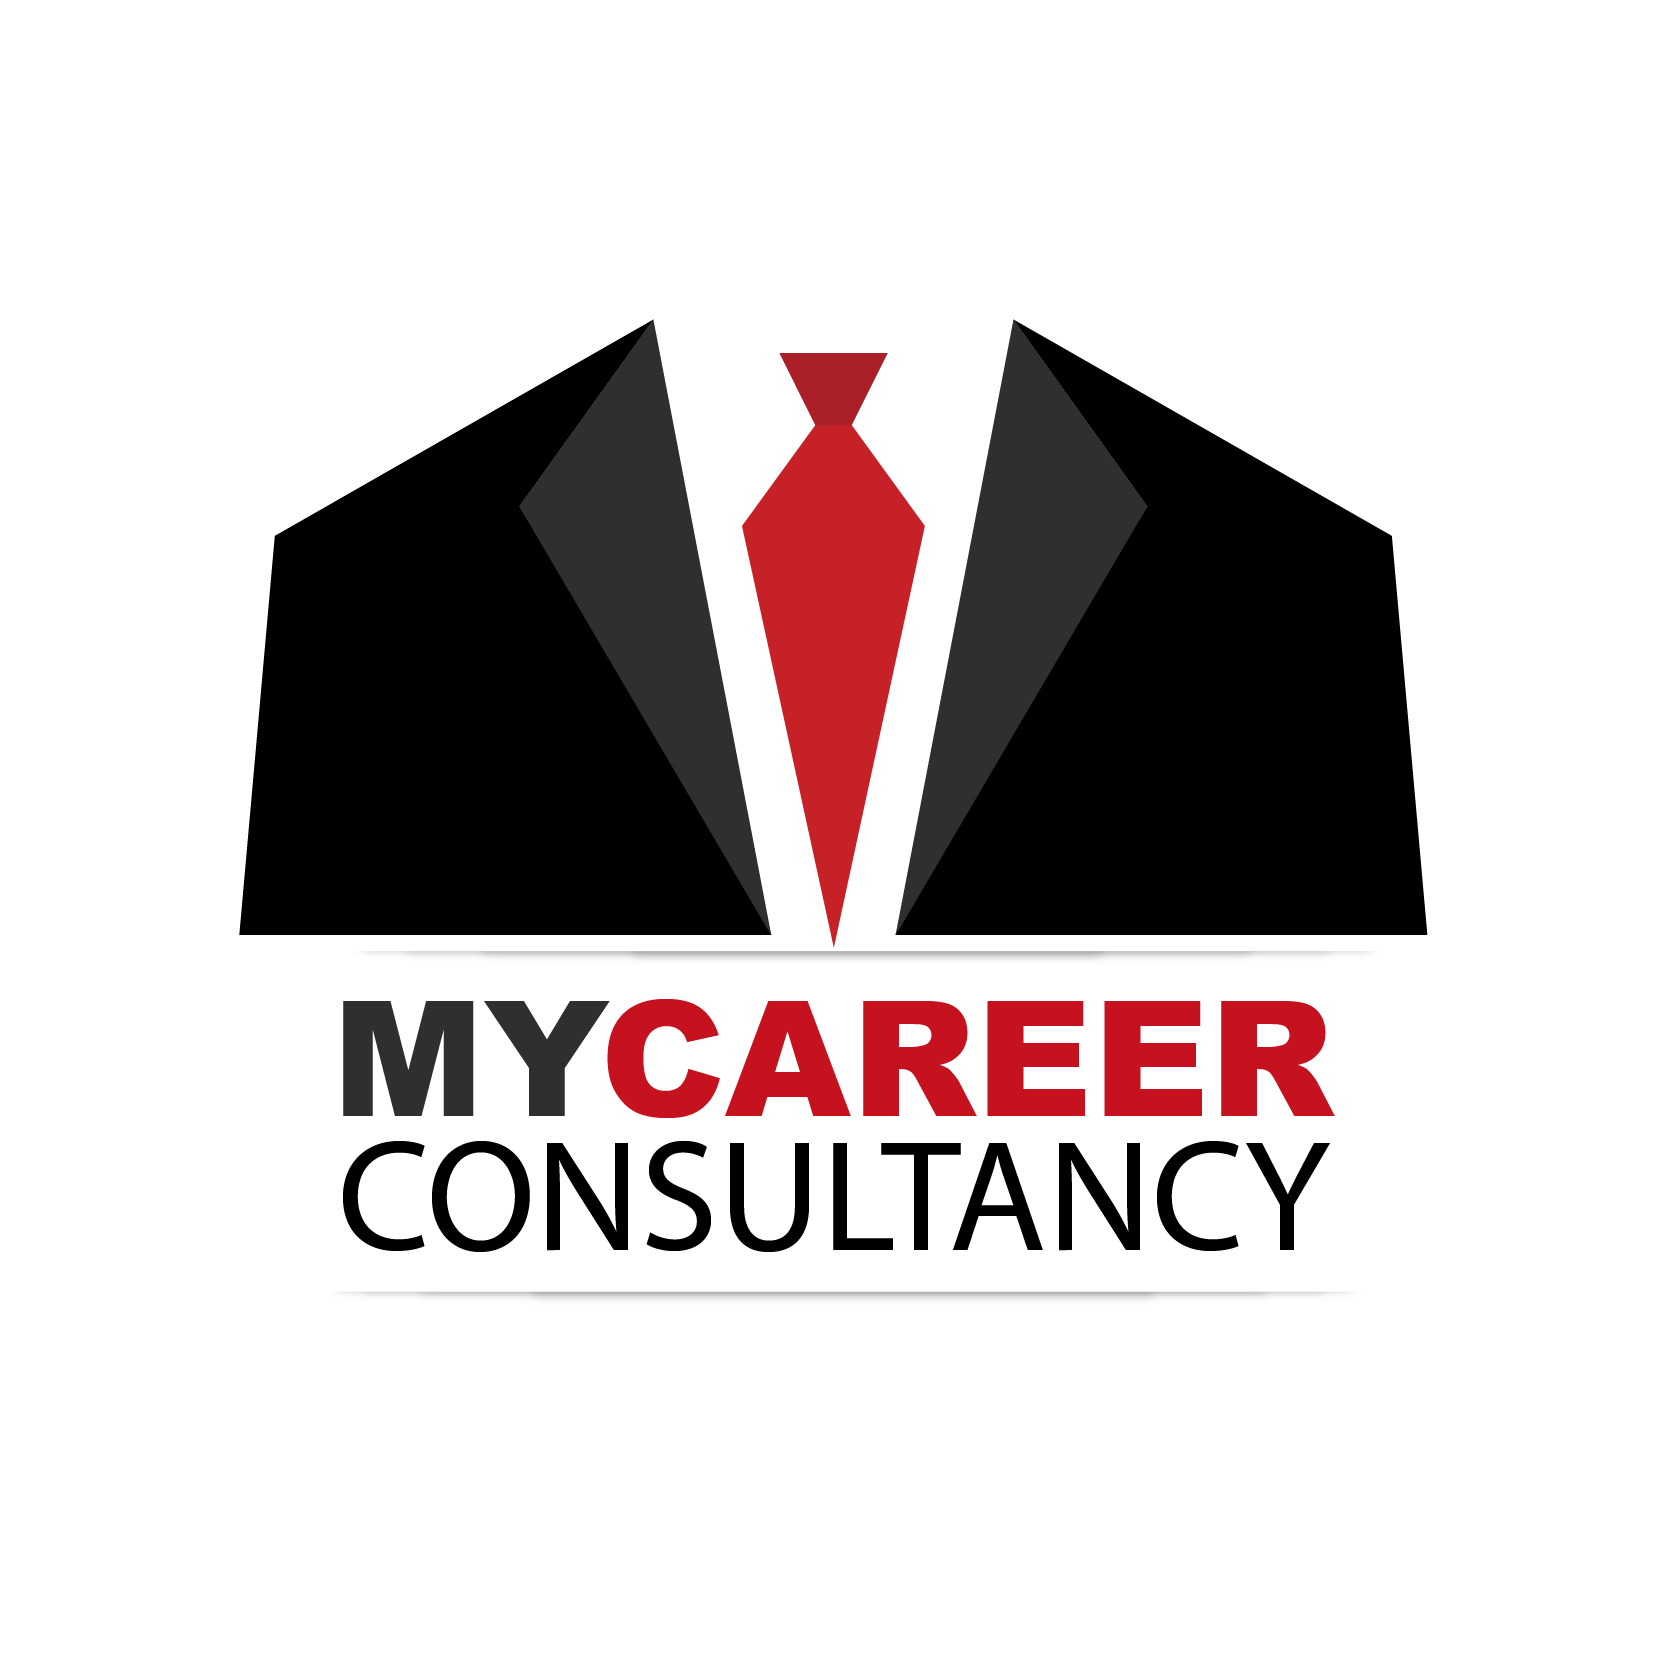 My Career Consultancy